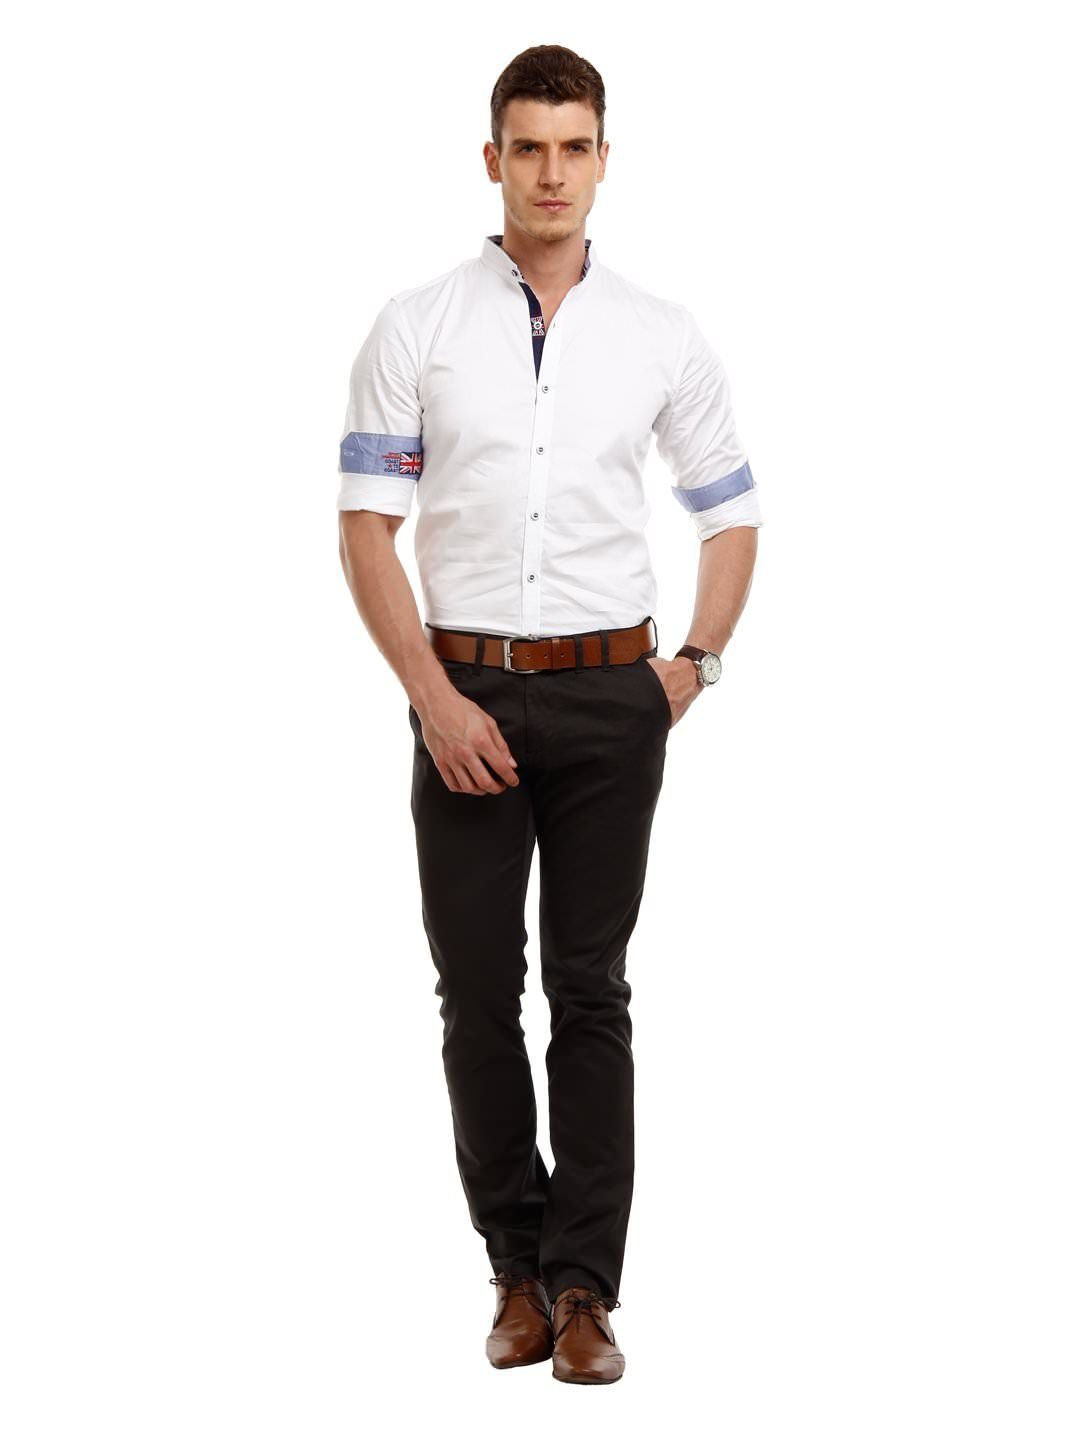 Men\u0027s smart/casual summer wear. Great complete outfit.